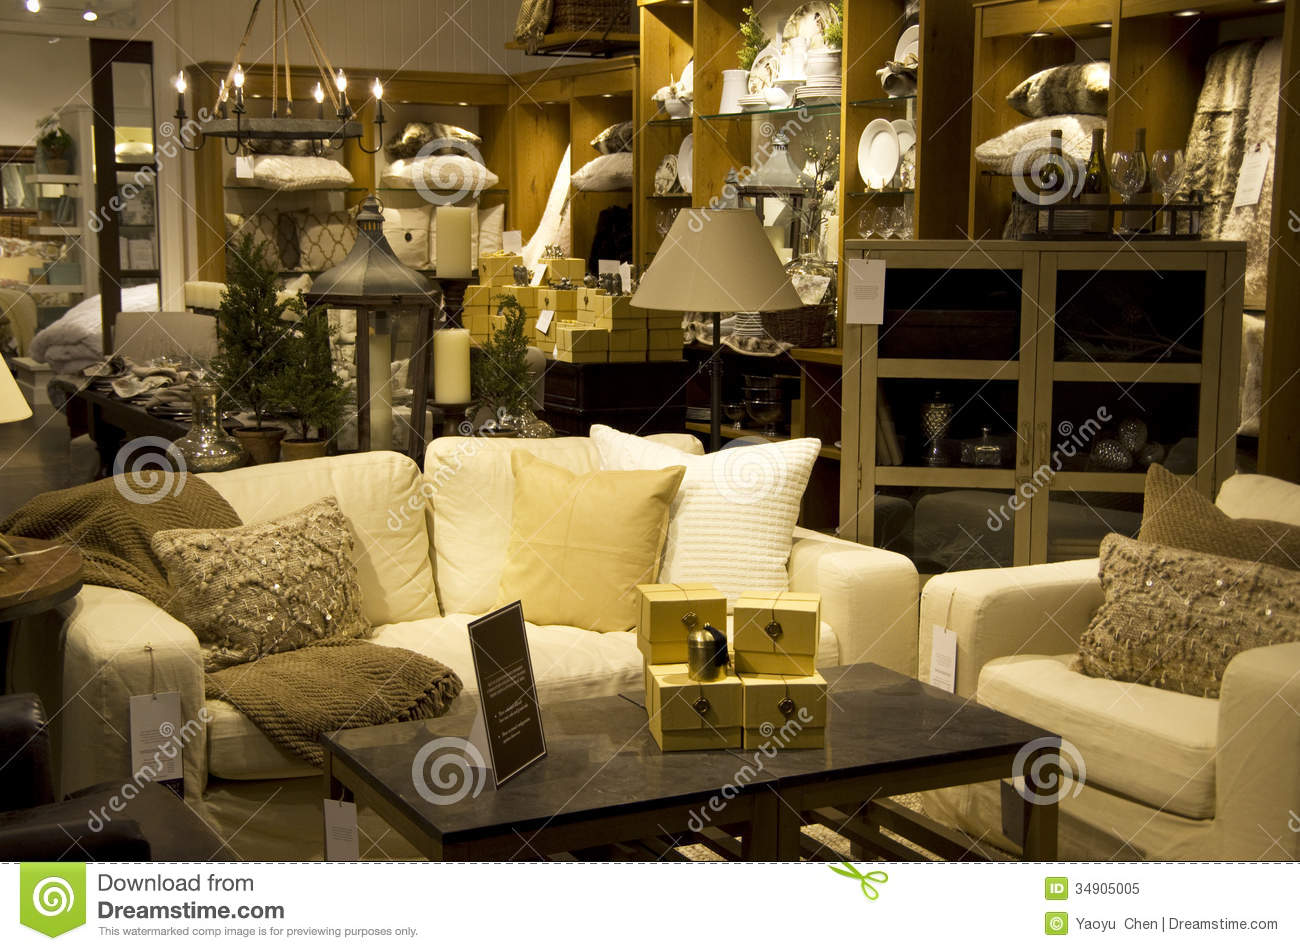 Luxury furniture home decor store stock image image for Home decor retailers